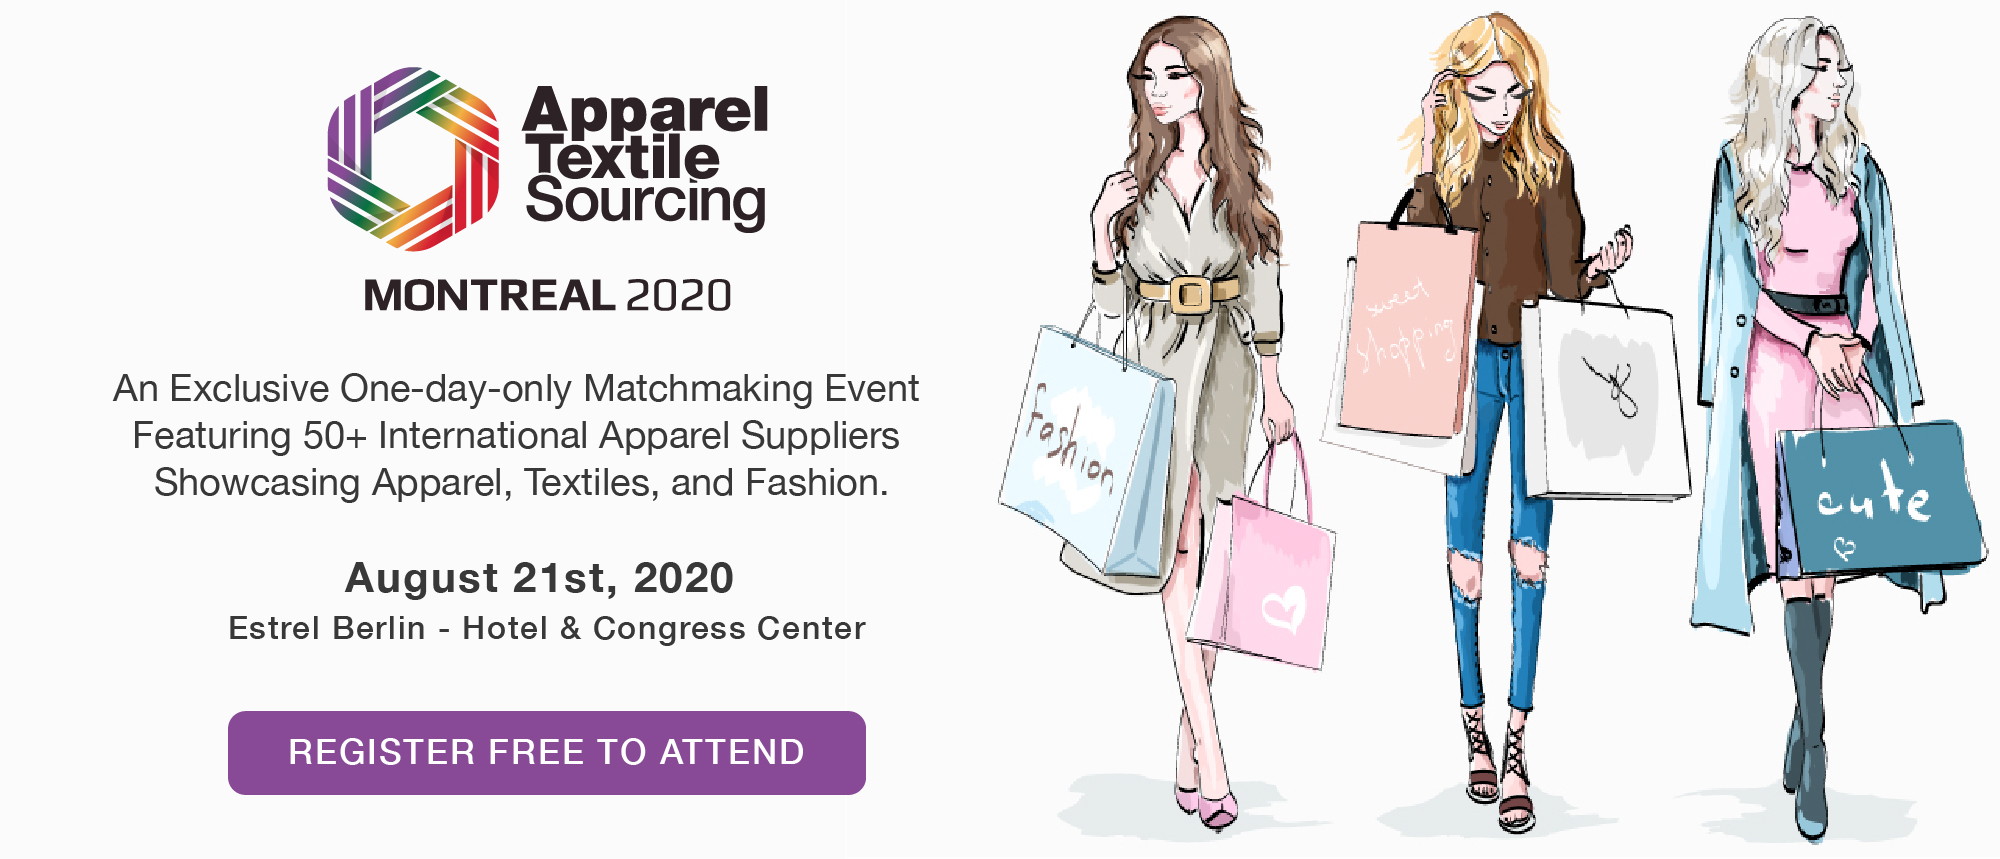 An Exclusive One-day-only Matchmaking Event  Featuring 50+ International Apparel Suppliers  Showcasing Apparel, Textiles, and Fashion.